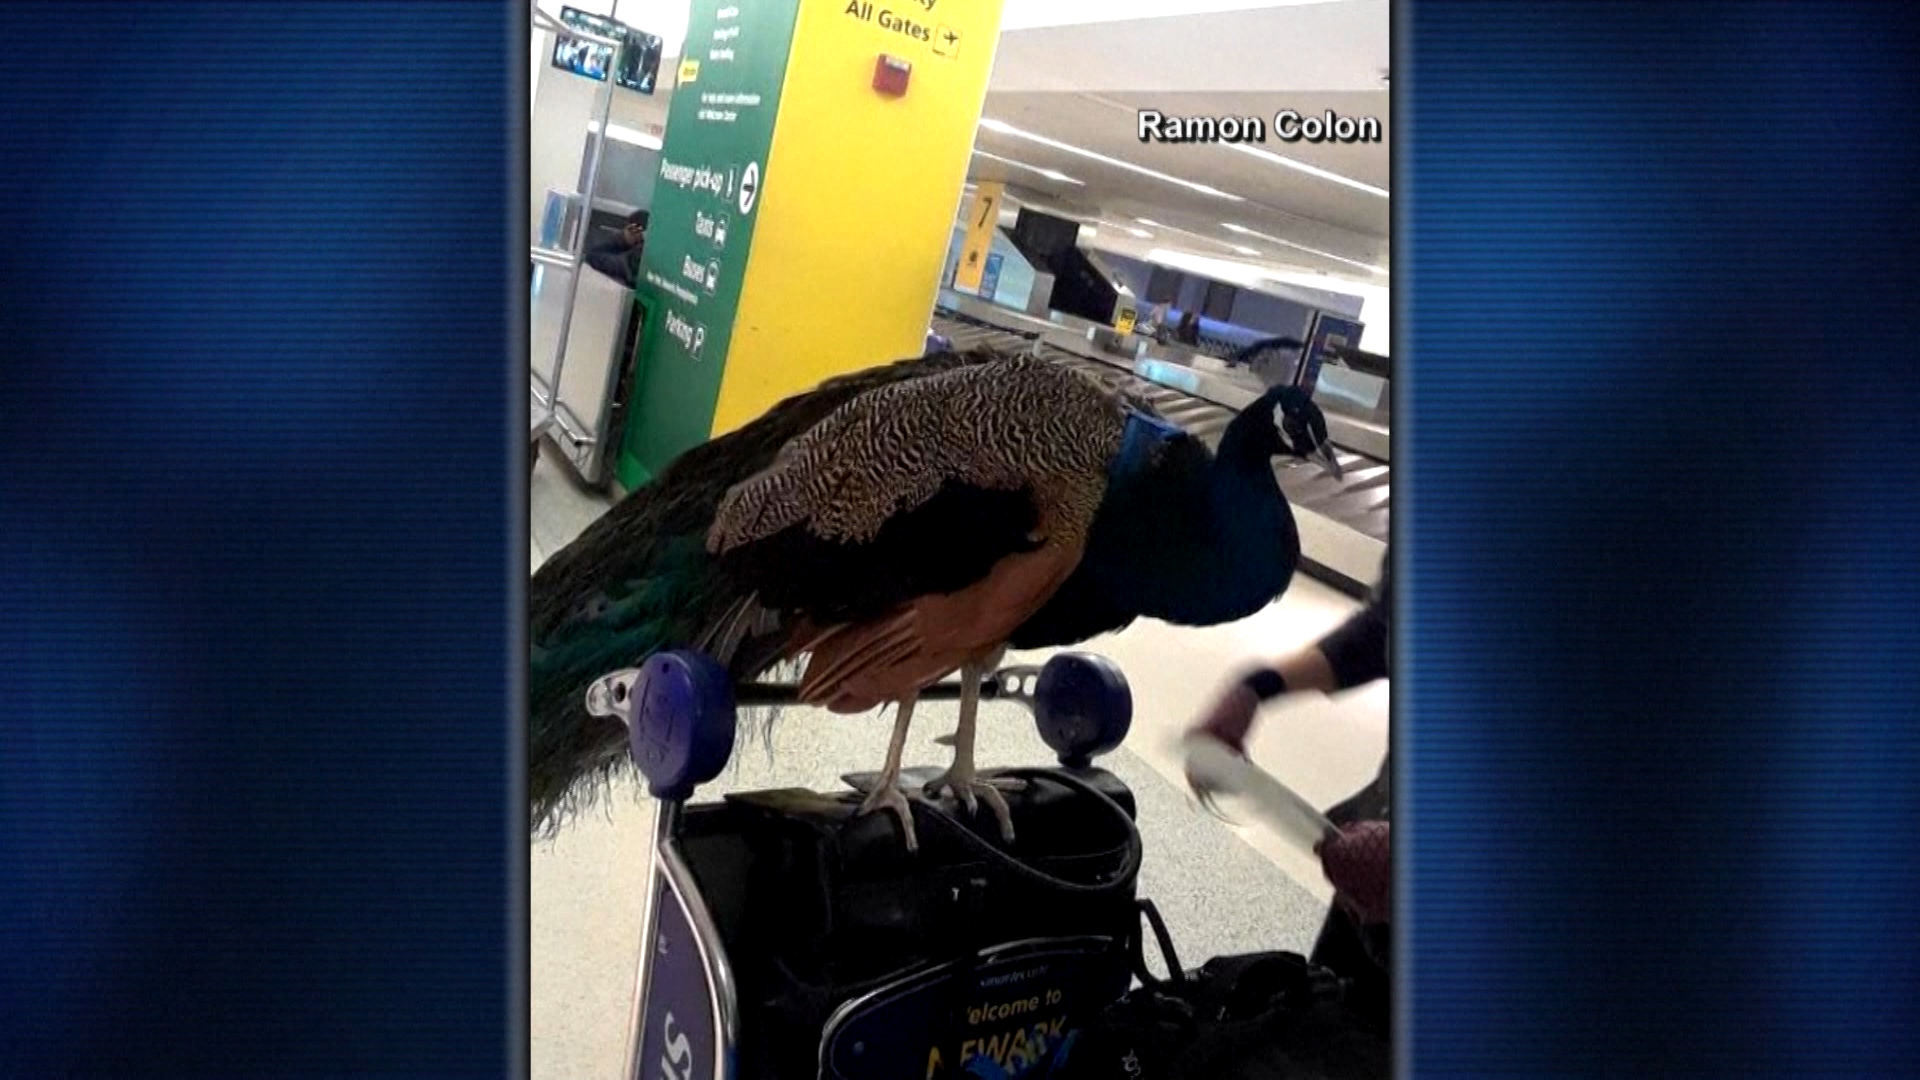 Dexter the emotional support peacock barred from flying